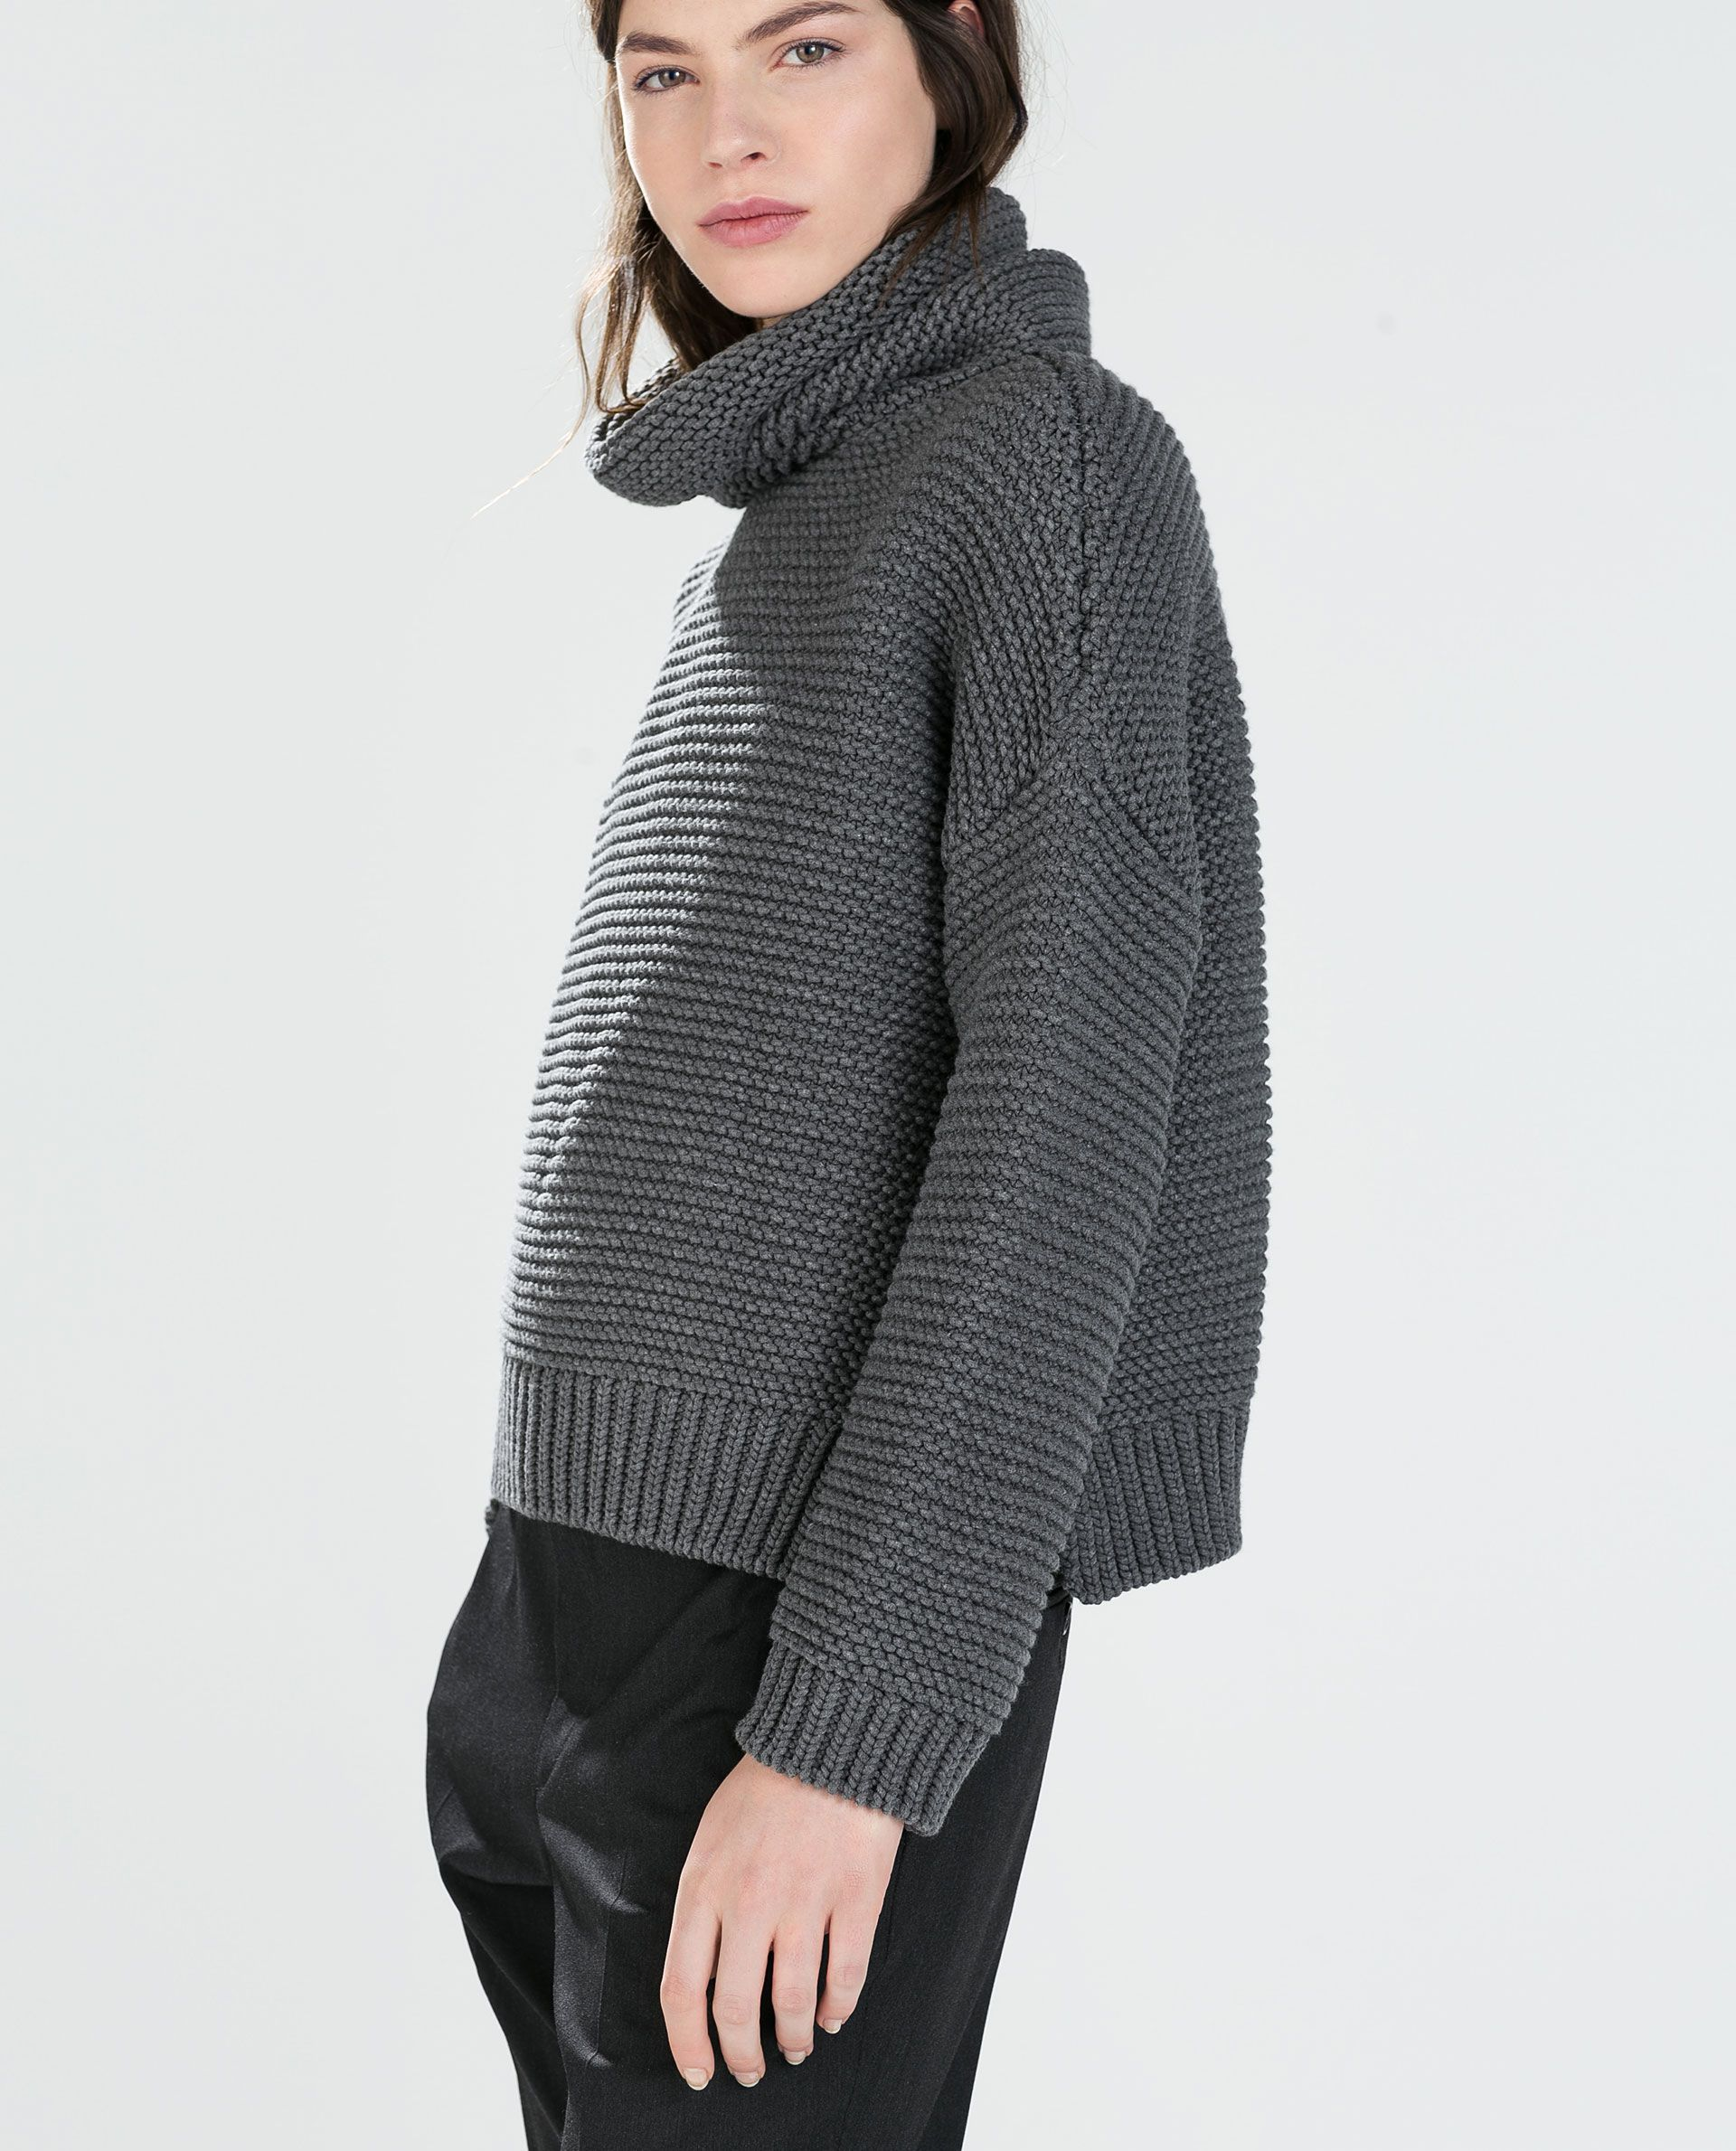 cf1bae43 Image 2 of HIGH NECK SWEATER from Zara | 333 pieces | Cardigans for ...